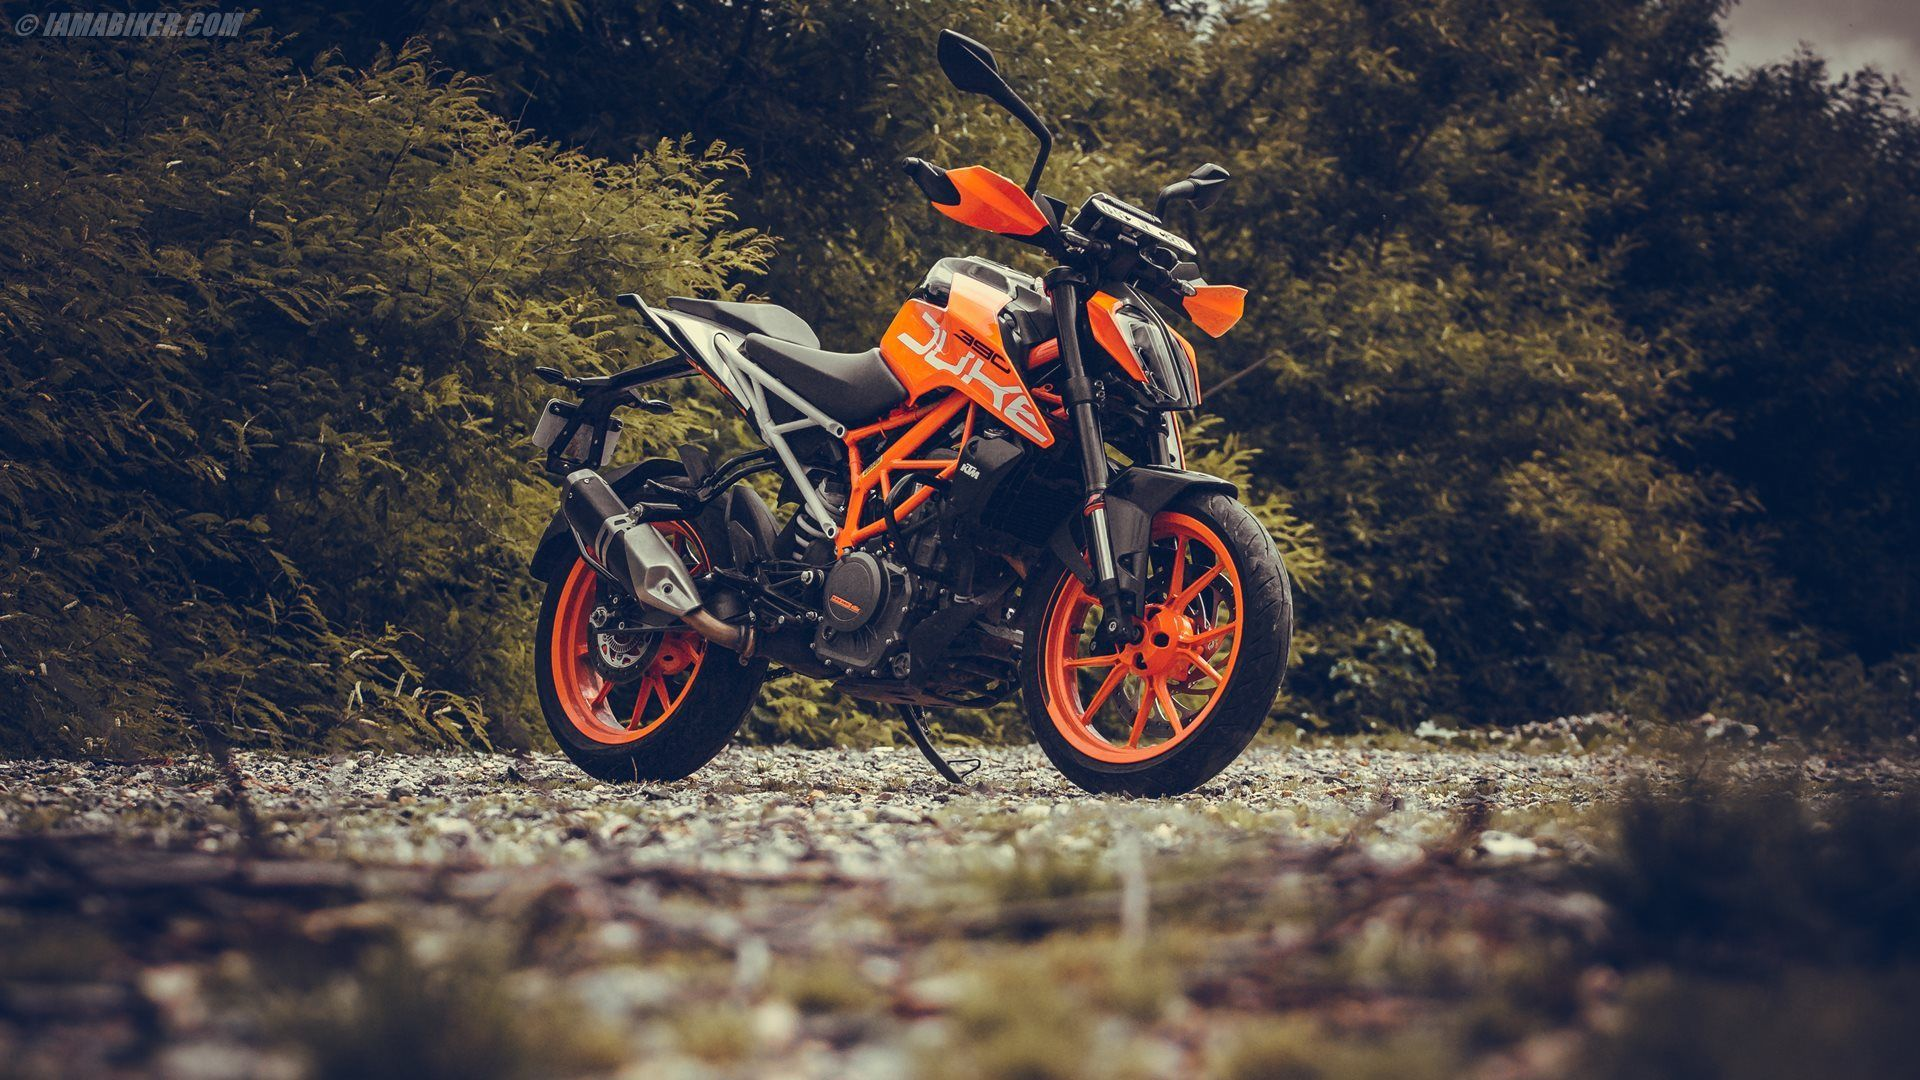 Ktm Duke 390 Wallpapers Top Free Ktm Duke 390 Backgrounds Wallpaperaccess